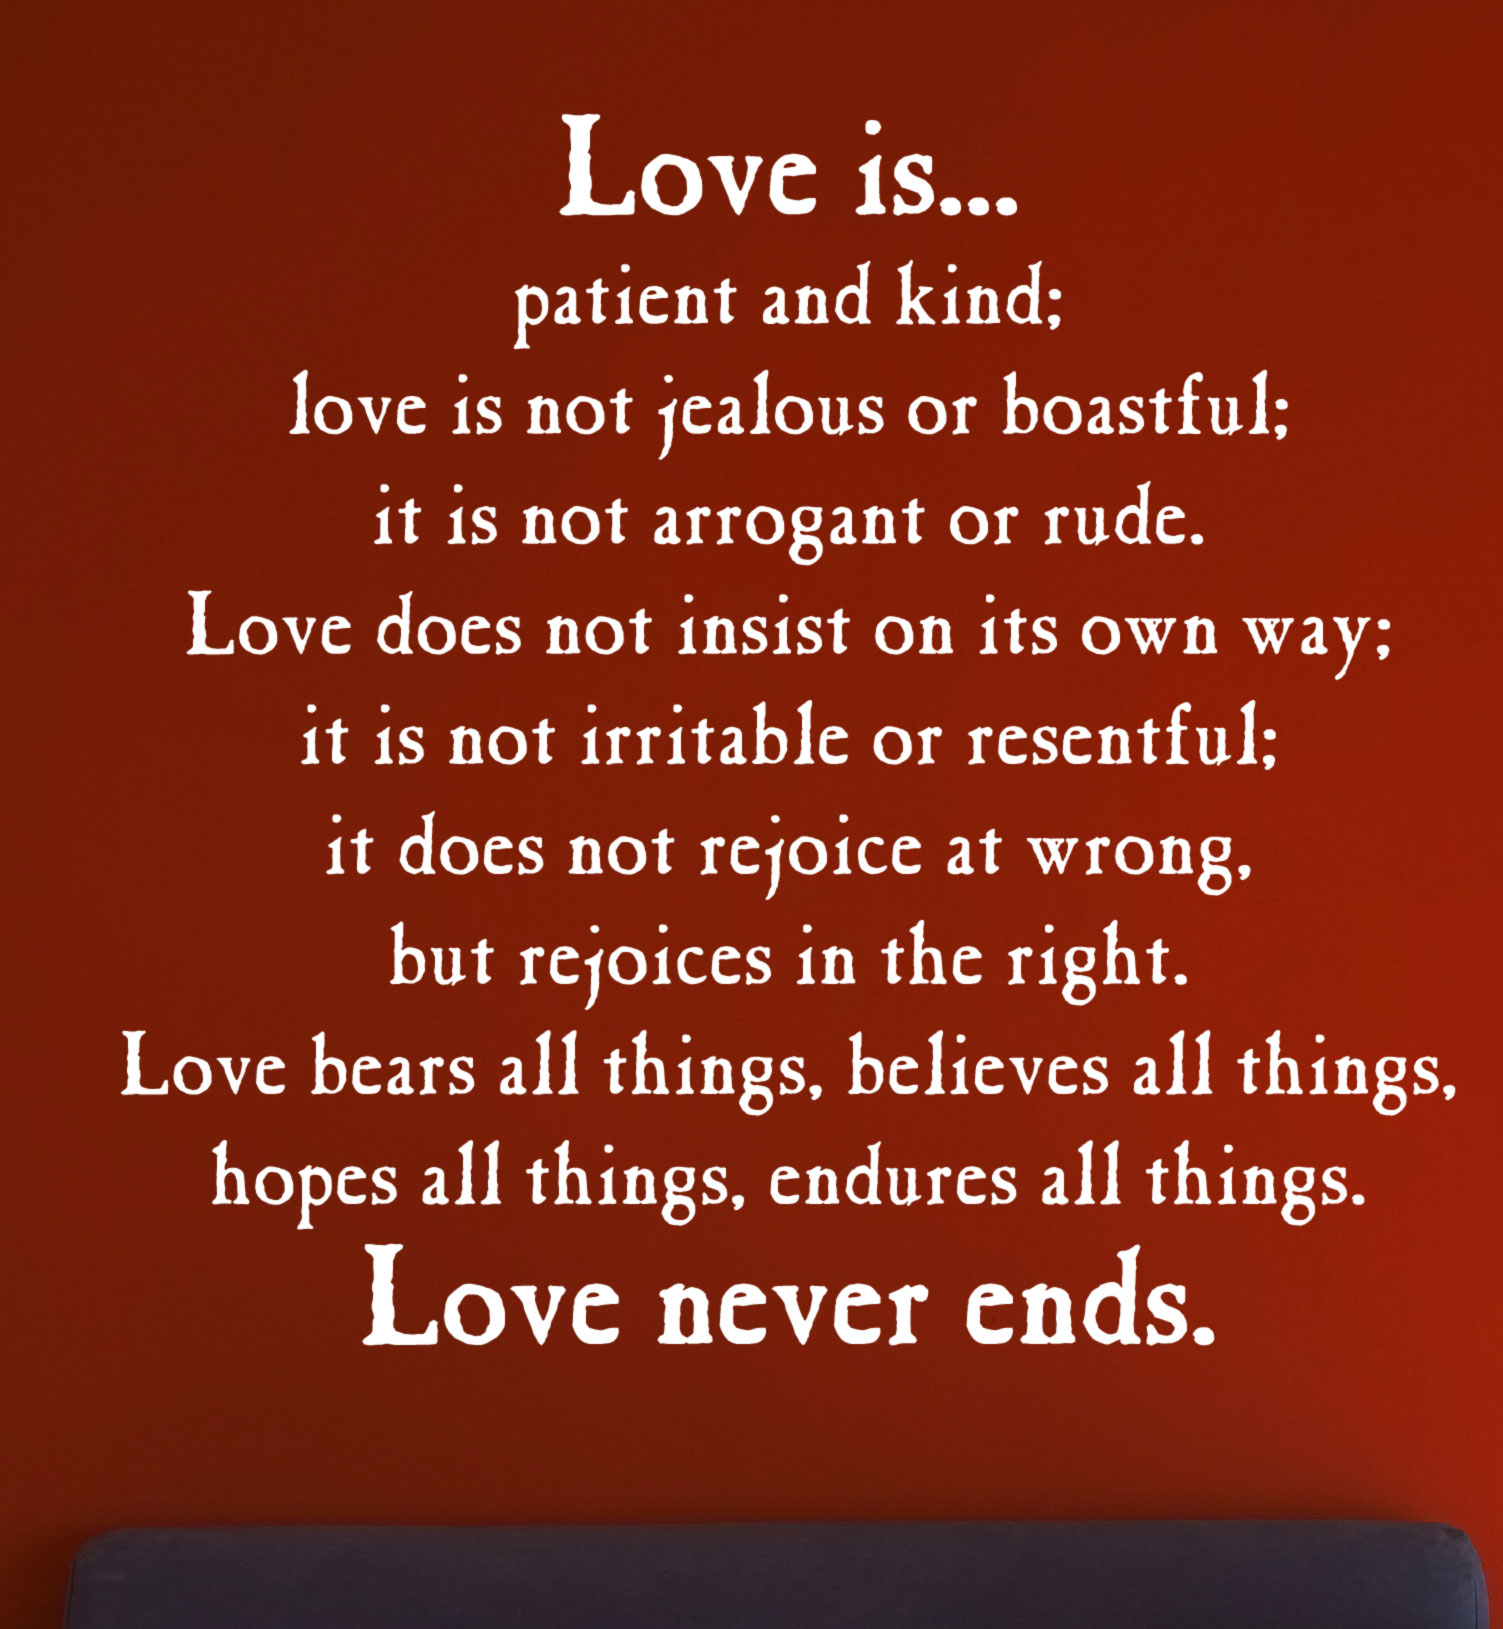 love is patient kind protect trust hope wall art vinyl decal